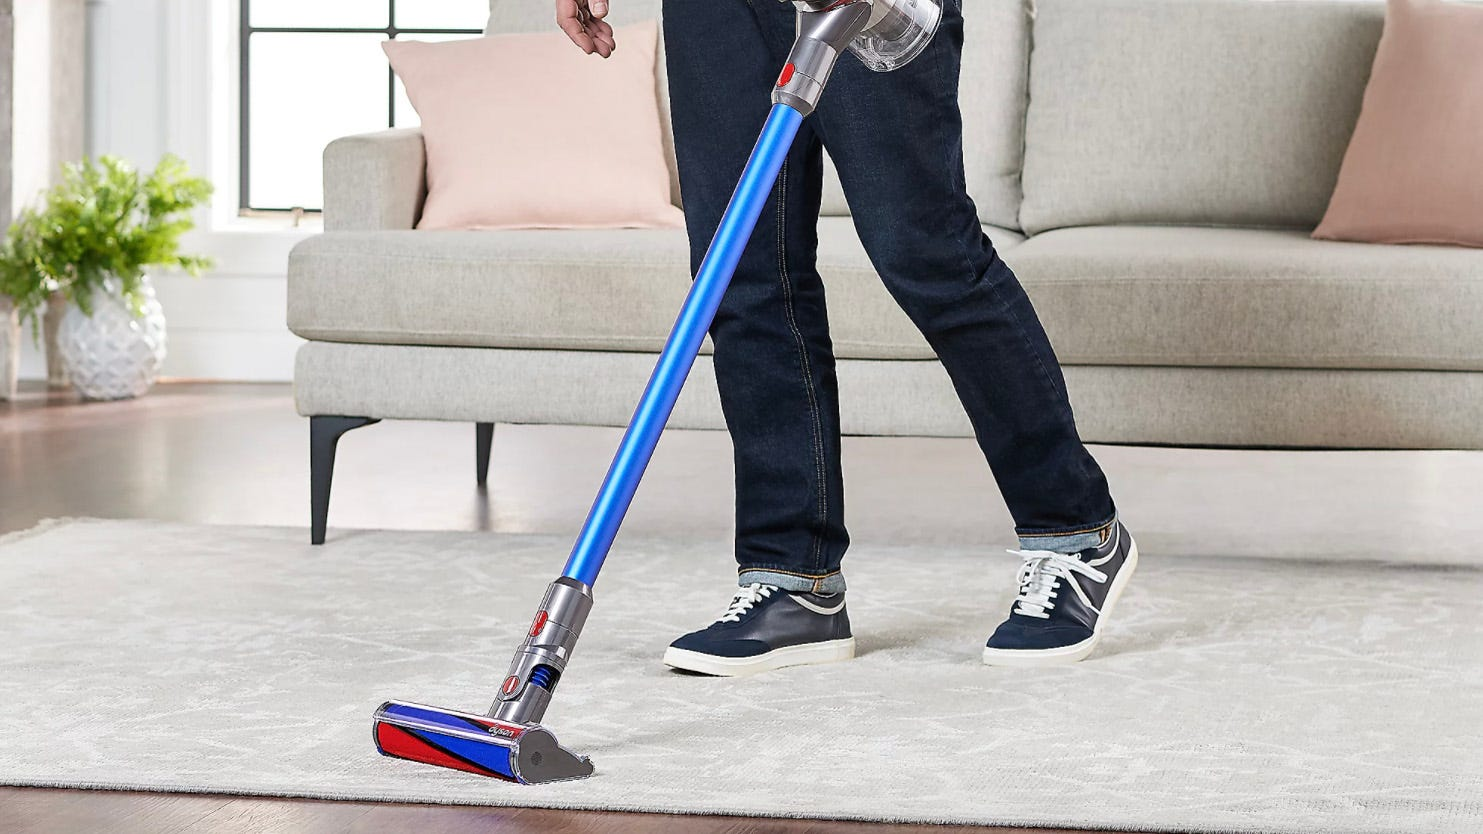 This upgraded model of the Dyson V8 Absolute Pro is more than $100 off